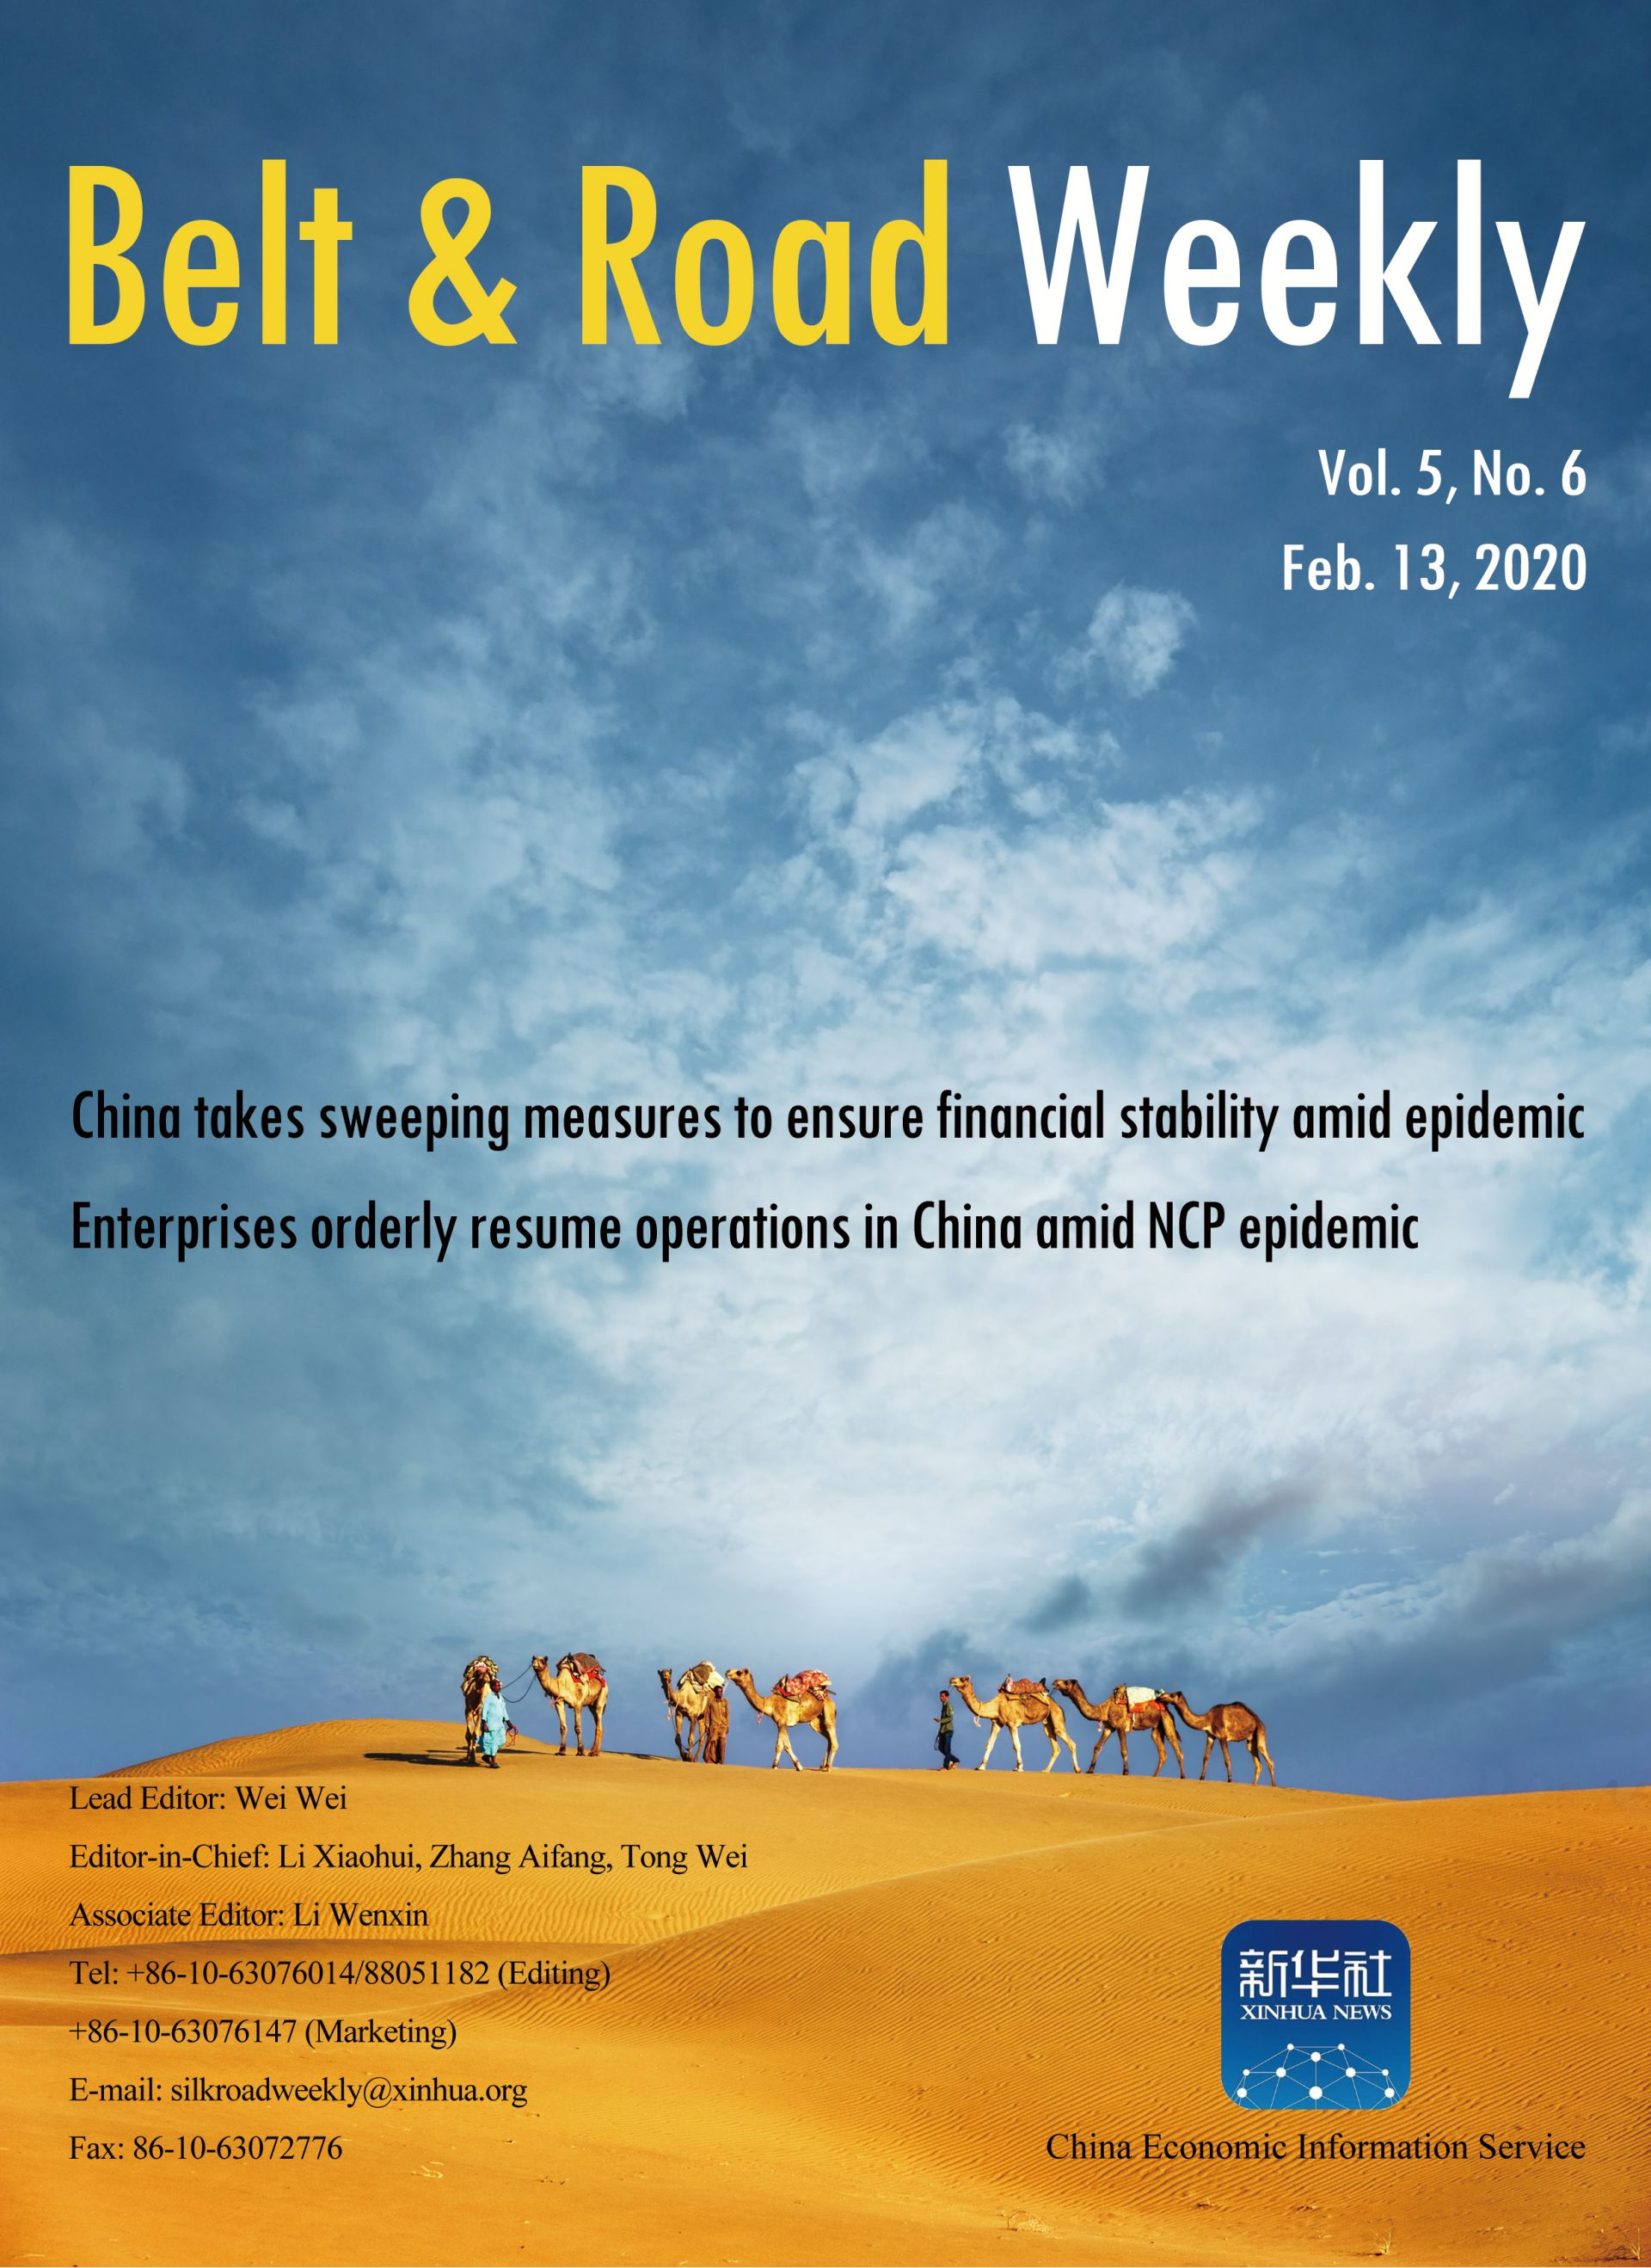 Belt & Road Weekly Vol. 5 No. 6